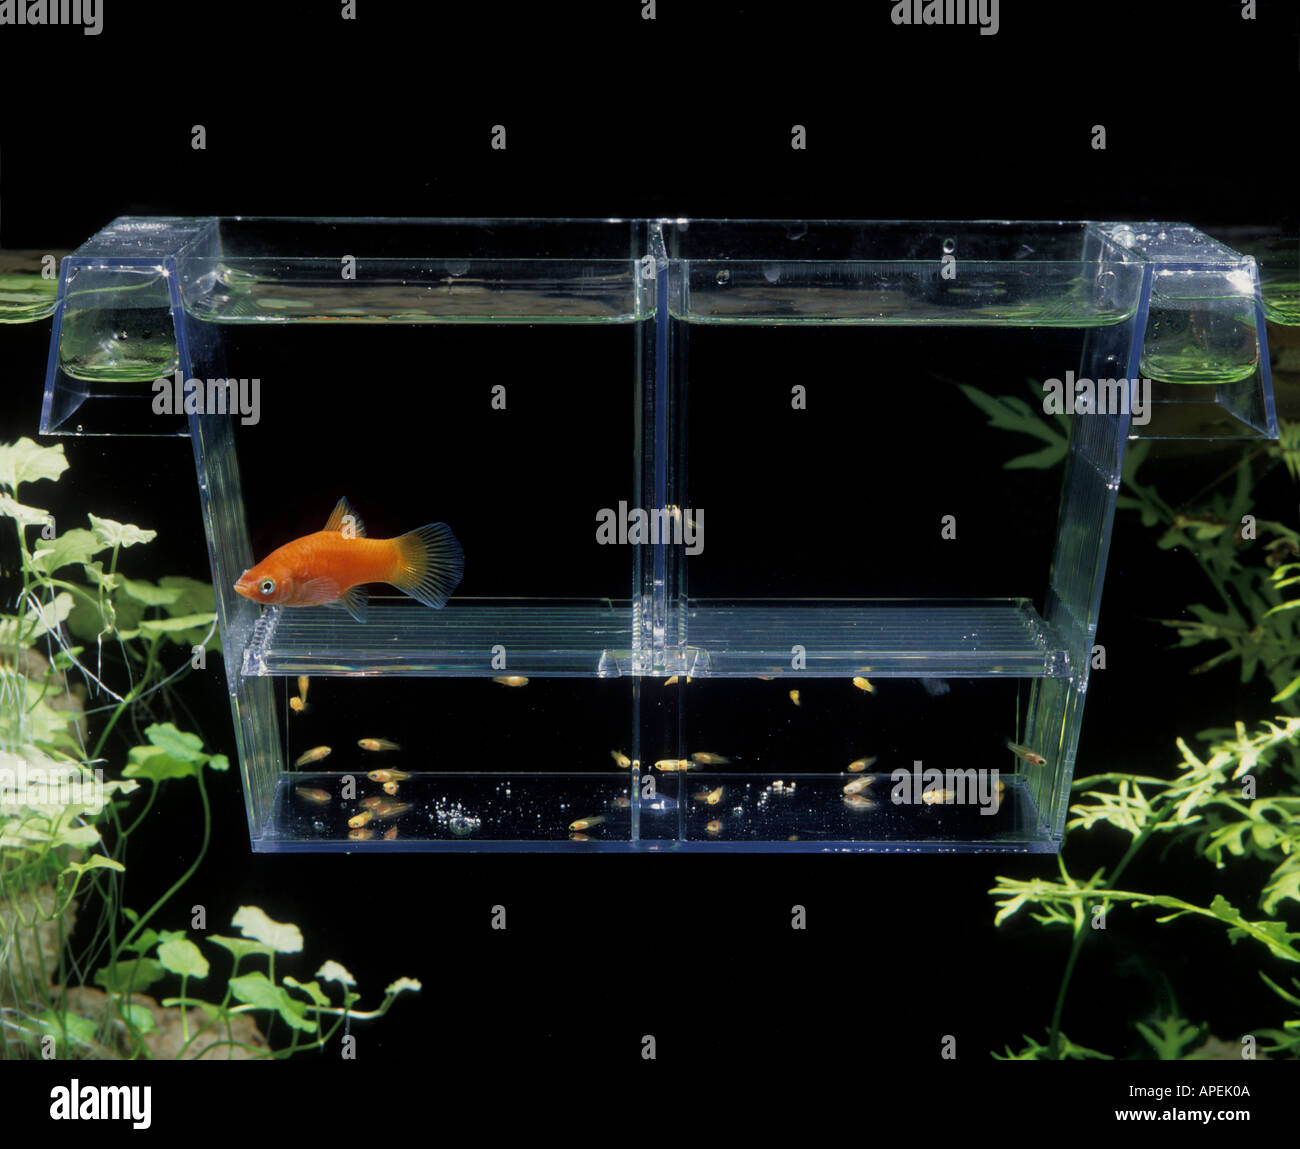 Platy fish stockfotos platy fish bilder alamy for Aquarium hintergrund ausdrucken